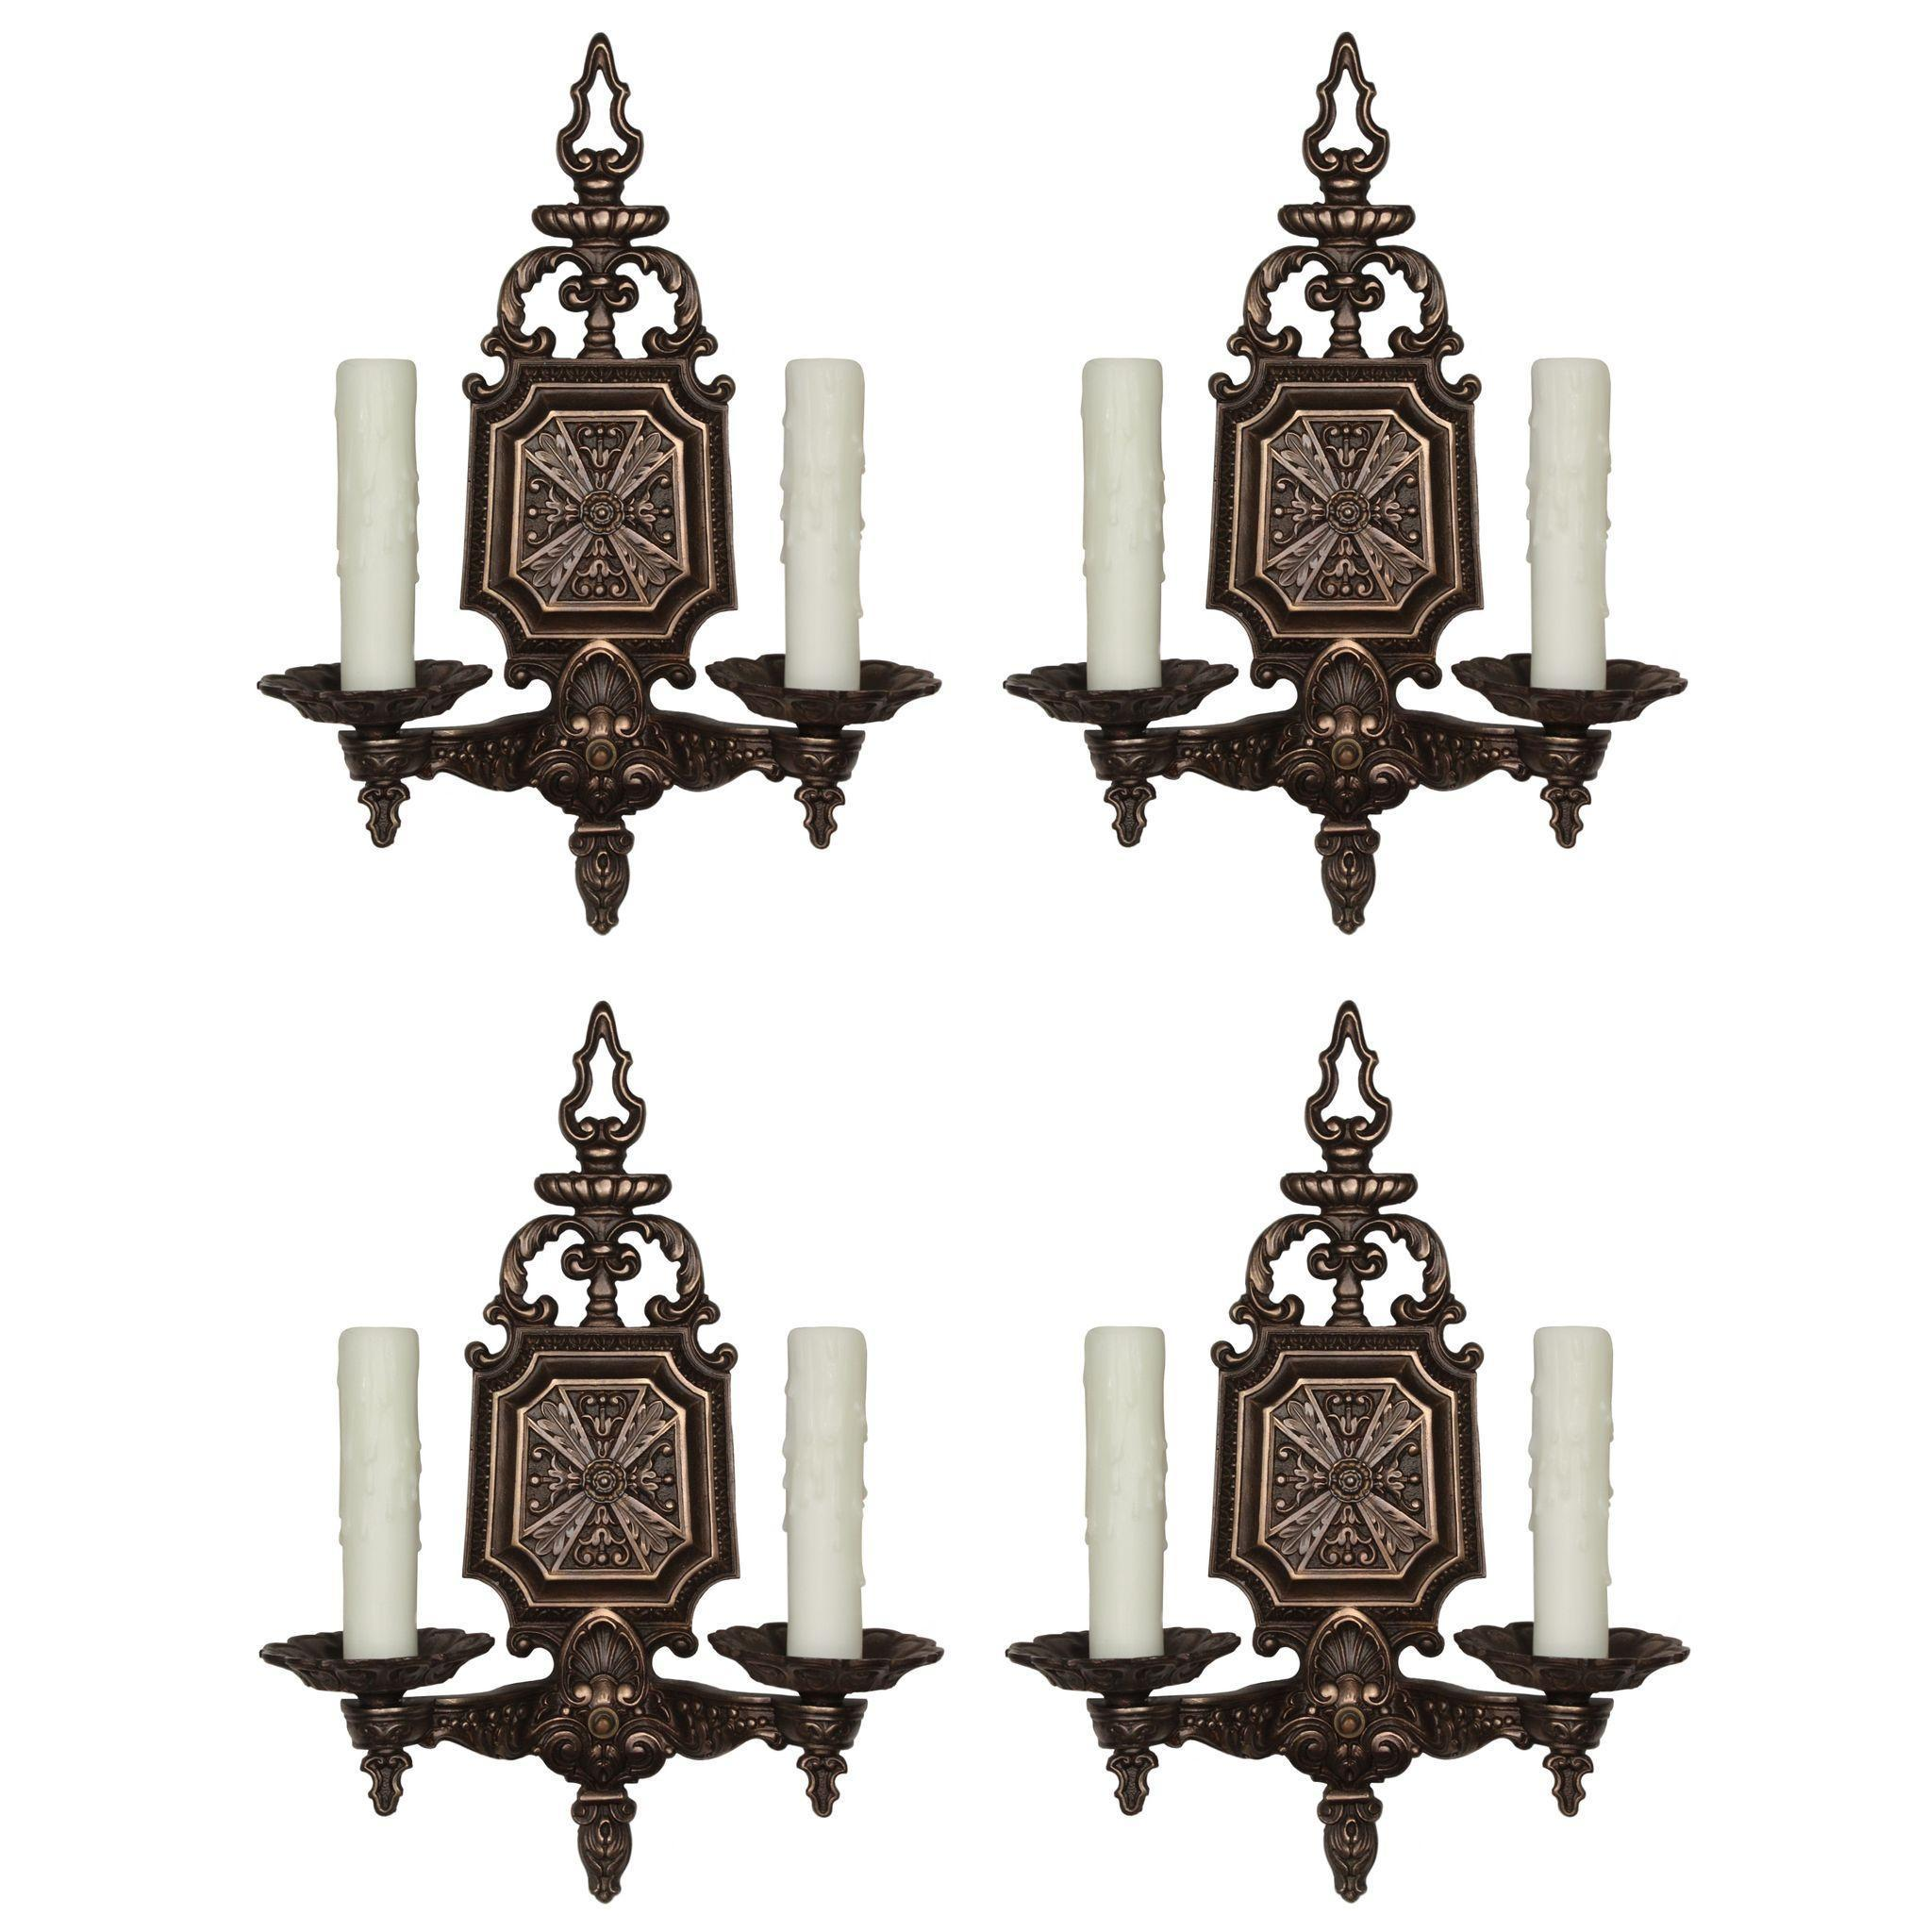 Striking Pairs of Antique Neoclassical Sconces, C.L.S.